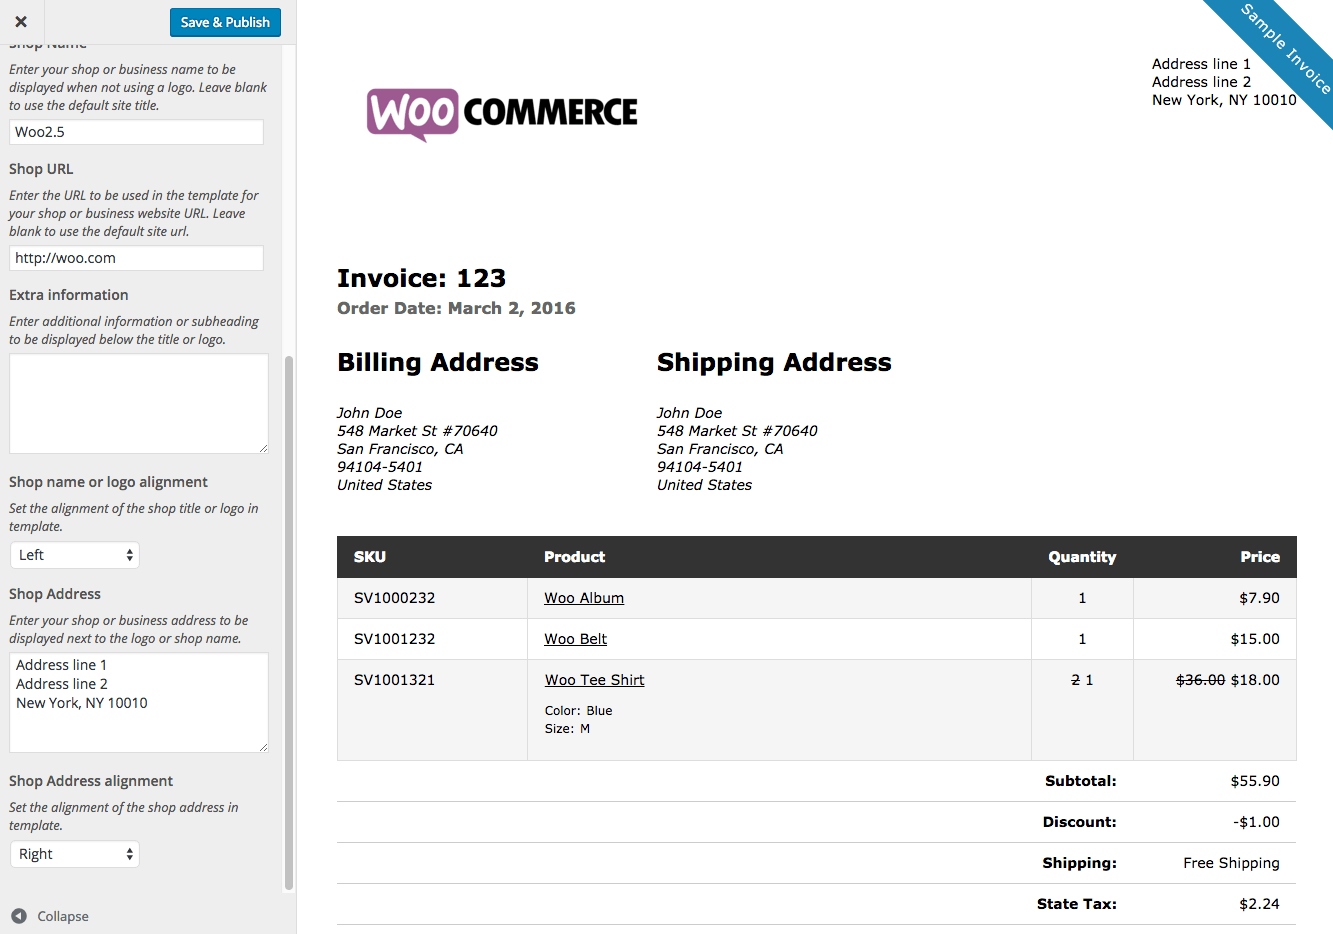 Aaaaeroincus  Sweet Woocommerce Print Invoices Amp Packing Lists  Woocommerce Docs With Heavenly Woocommerce Print Invoices  Packing Lists Customizer With Nice Carpet Installation Invoice Template Also Invoice Price Jeep Wrangler In Addition Individual Invoice Template And Purpose Of An Invoice As Well As Nch Software Invoice Additionally Free Auto Repair Invoice Form From Docswoocommercecom With Aaaaeroincus  Heavenly Woocommerce Print Invoices Amp Packing Lists  Woocommerce Docs With Nice Woocommerce Print Invoices  Packing Lists Customizer And Sweet Carpet Installation Invoice Template Also Invoice Price Jeep Wrangler In Addition Individual Invoice Template From Docswoocommercecom